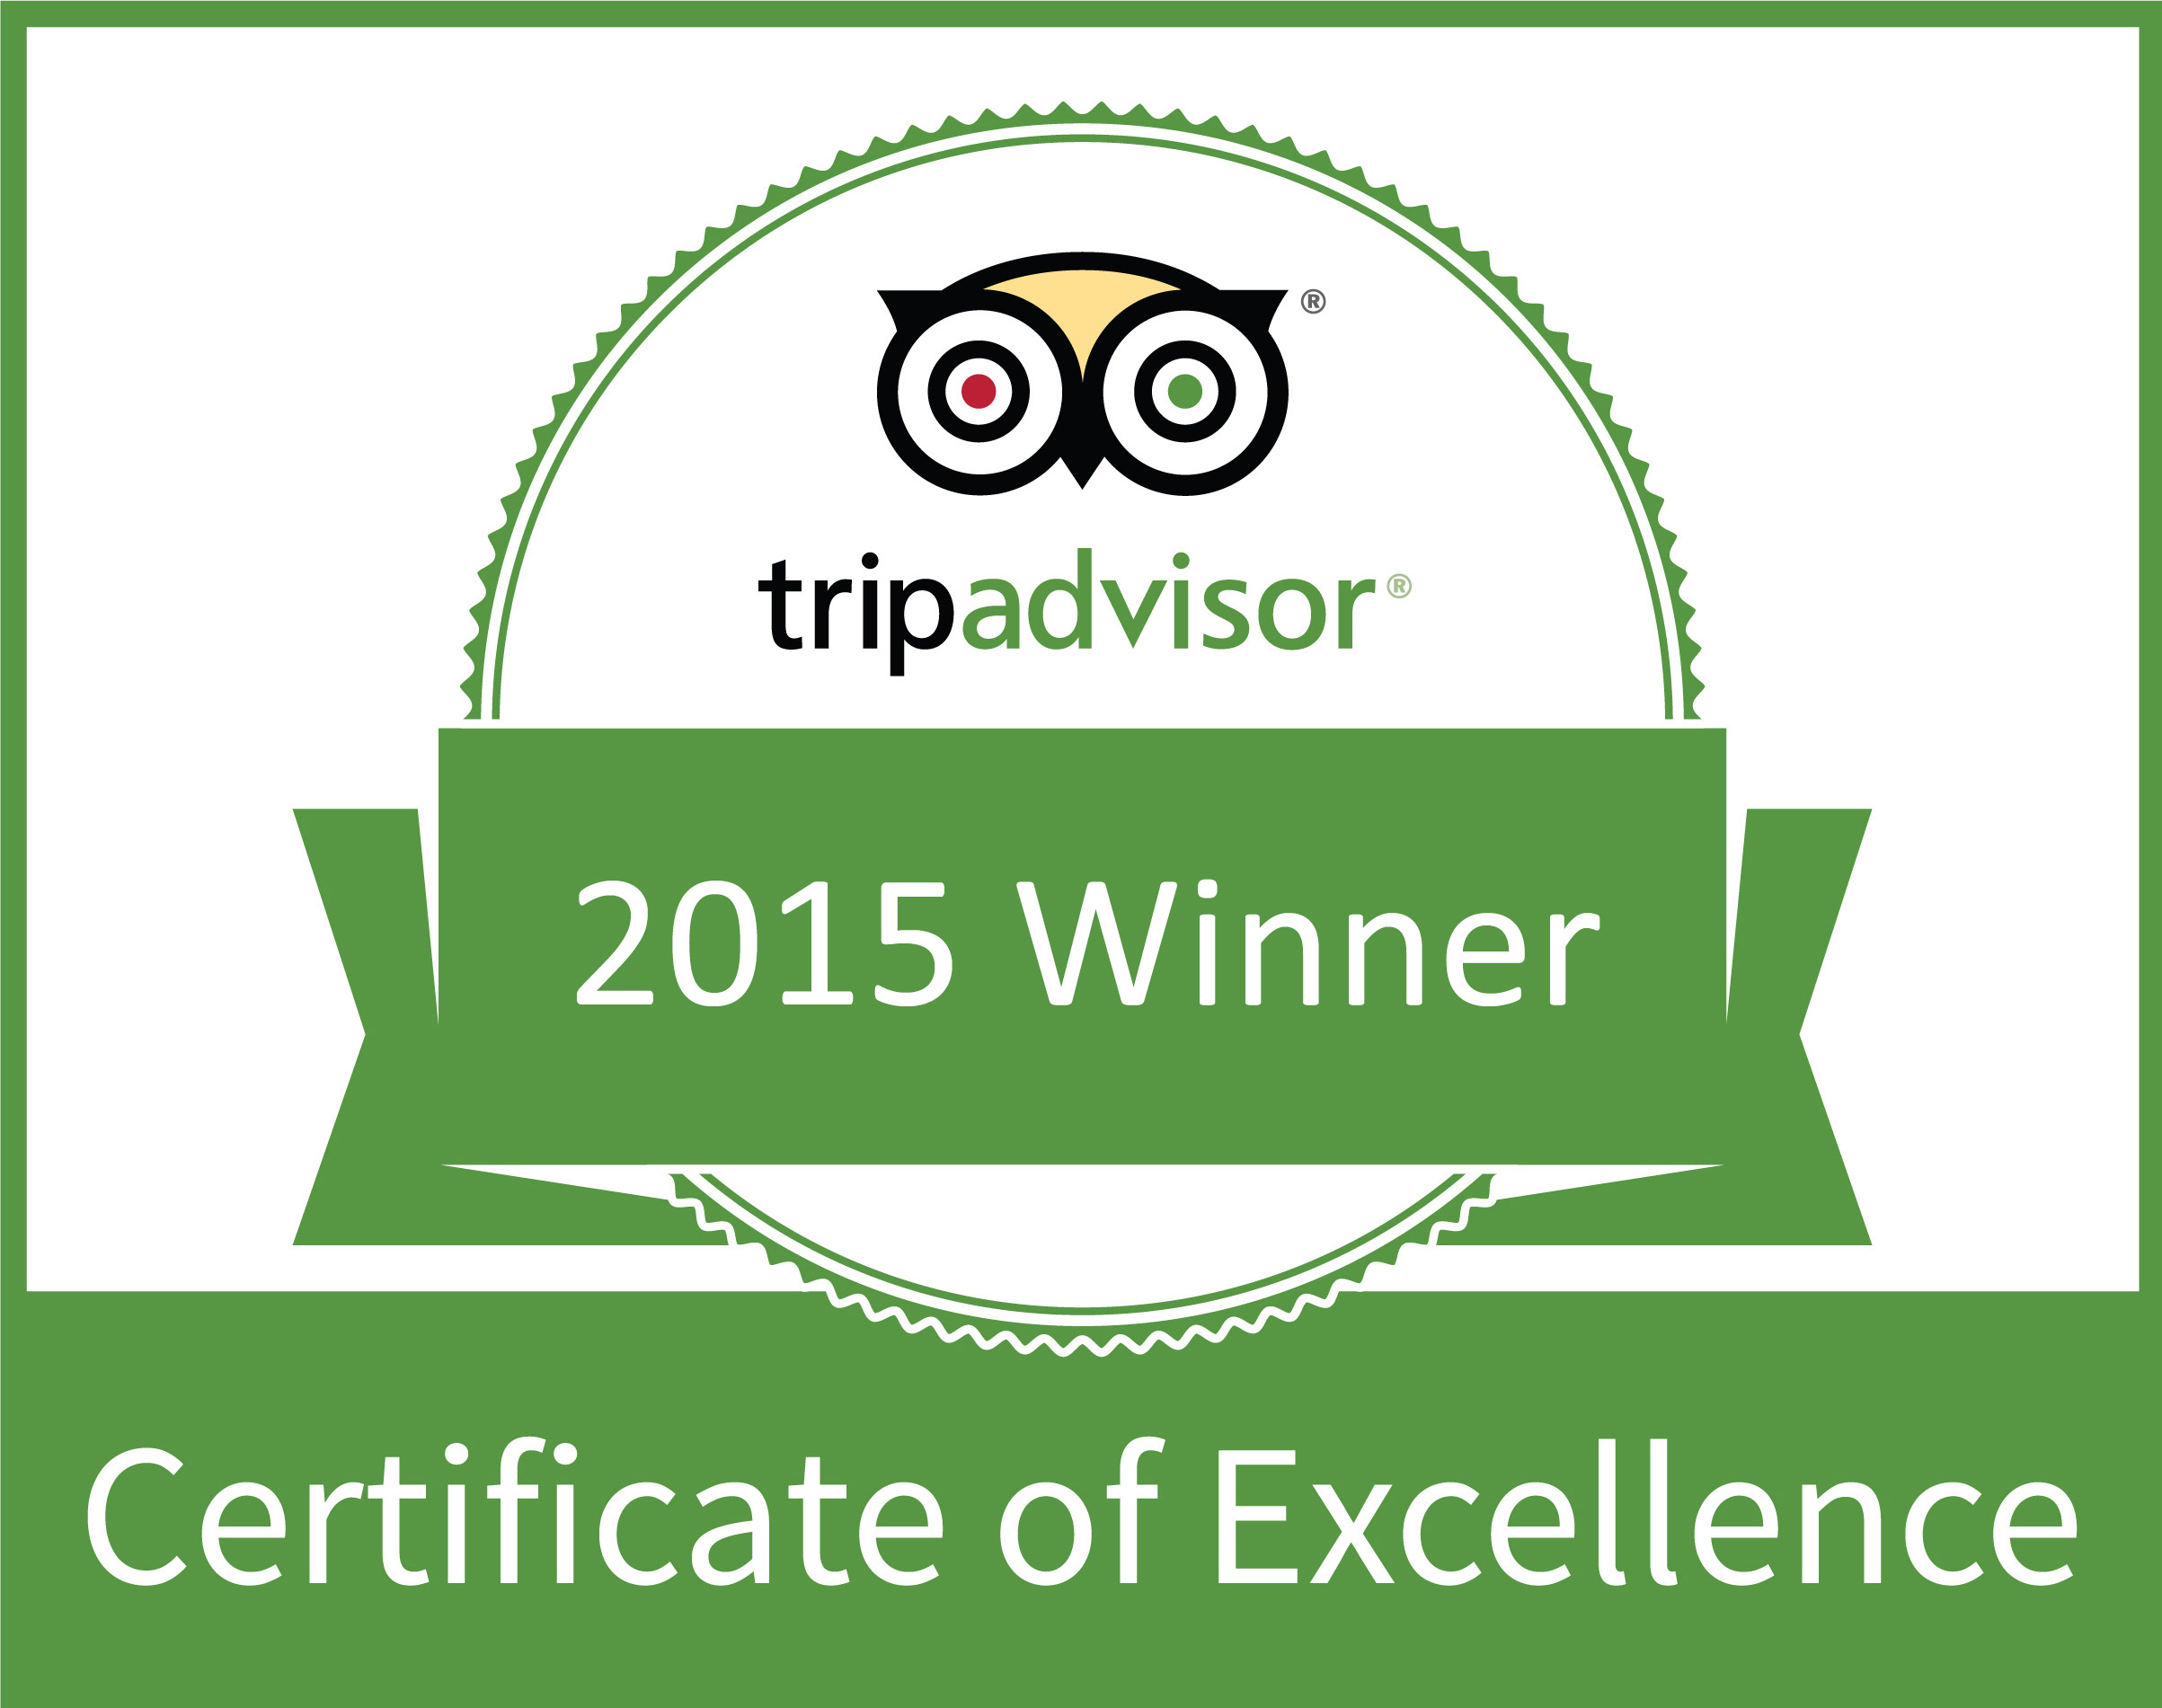 trip_advisorcertificateofexcellence2015